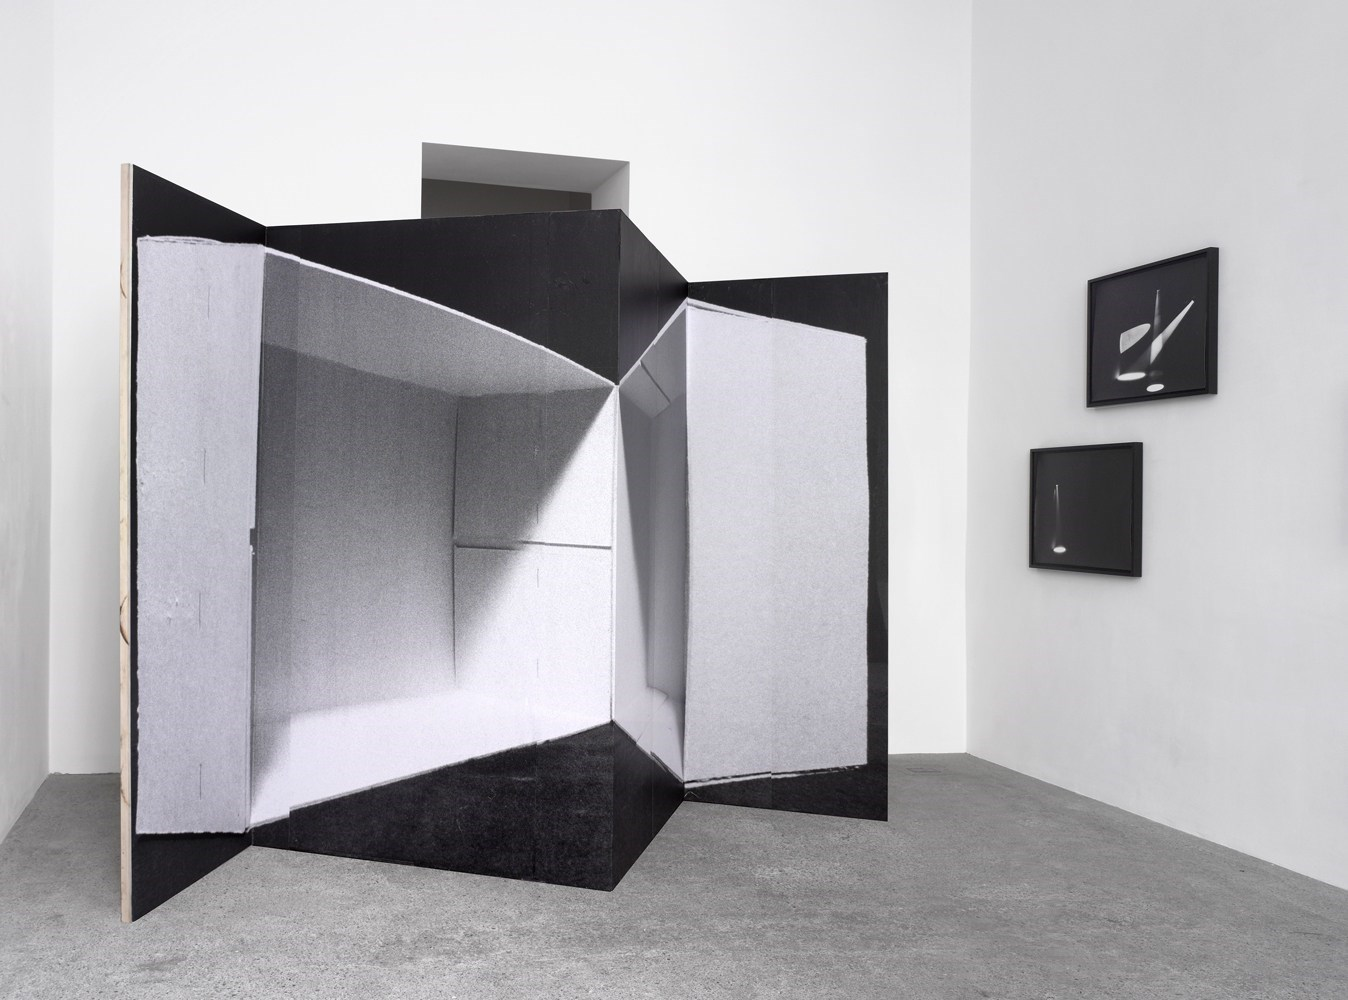 Spanische Wand, 215cm x 286cm, black & white prints and wood, 2012<br />Installation view Sassa Trülzsch, Berlin